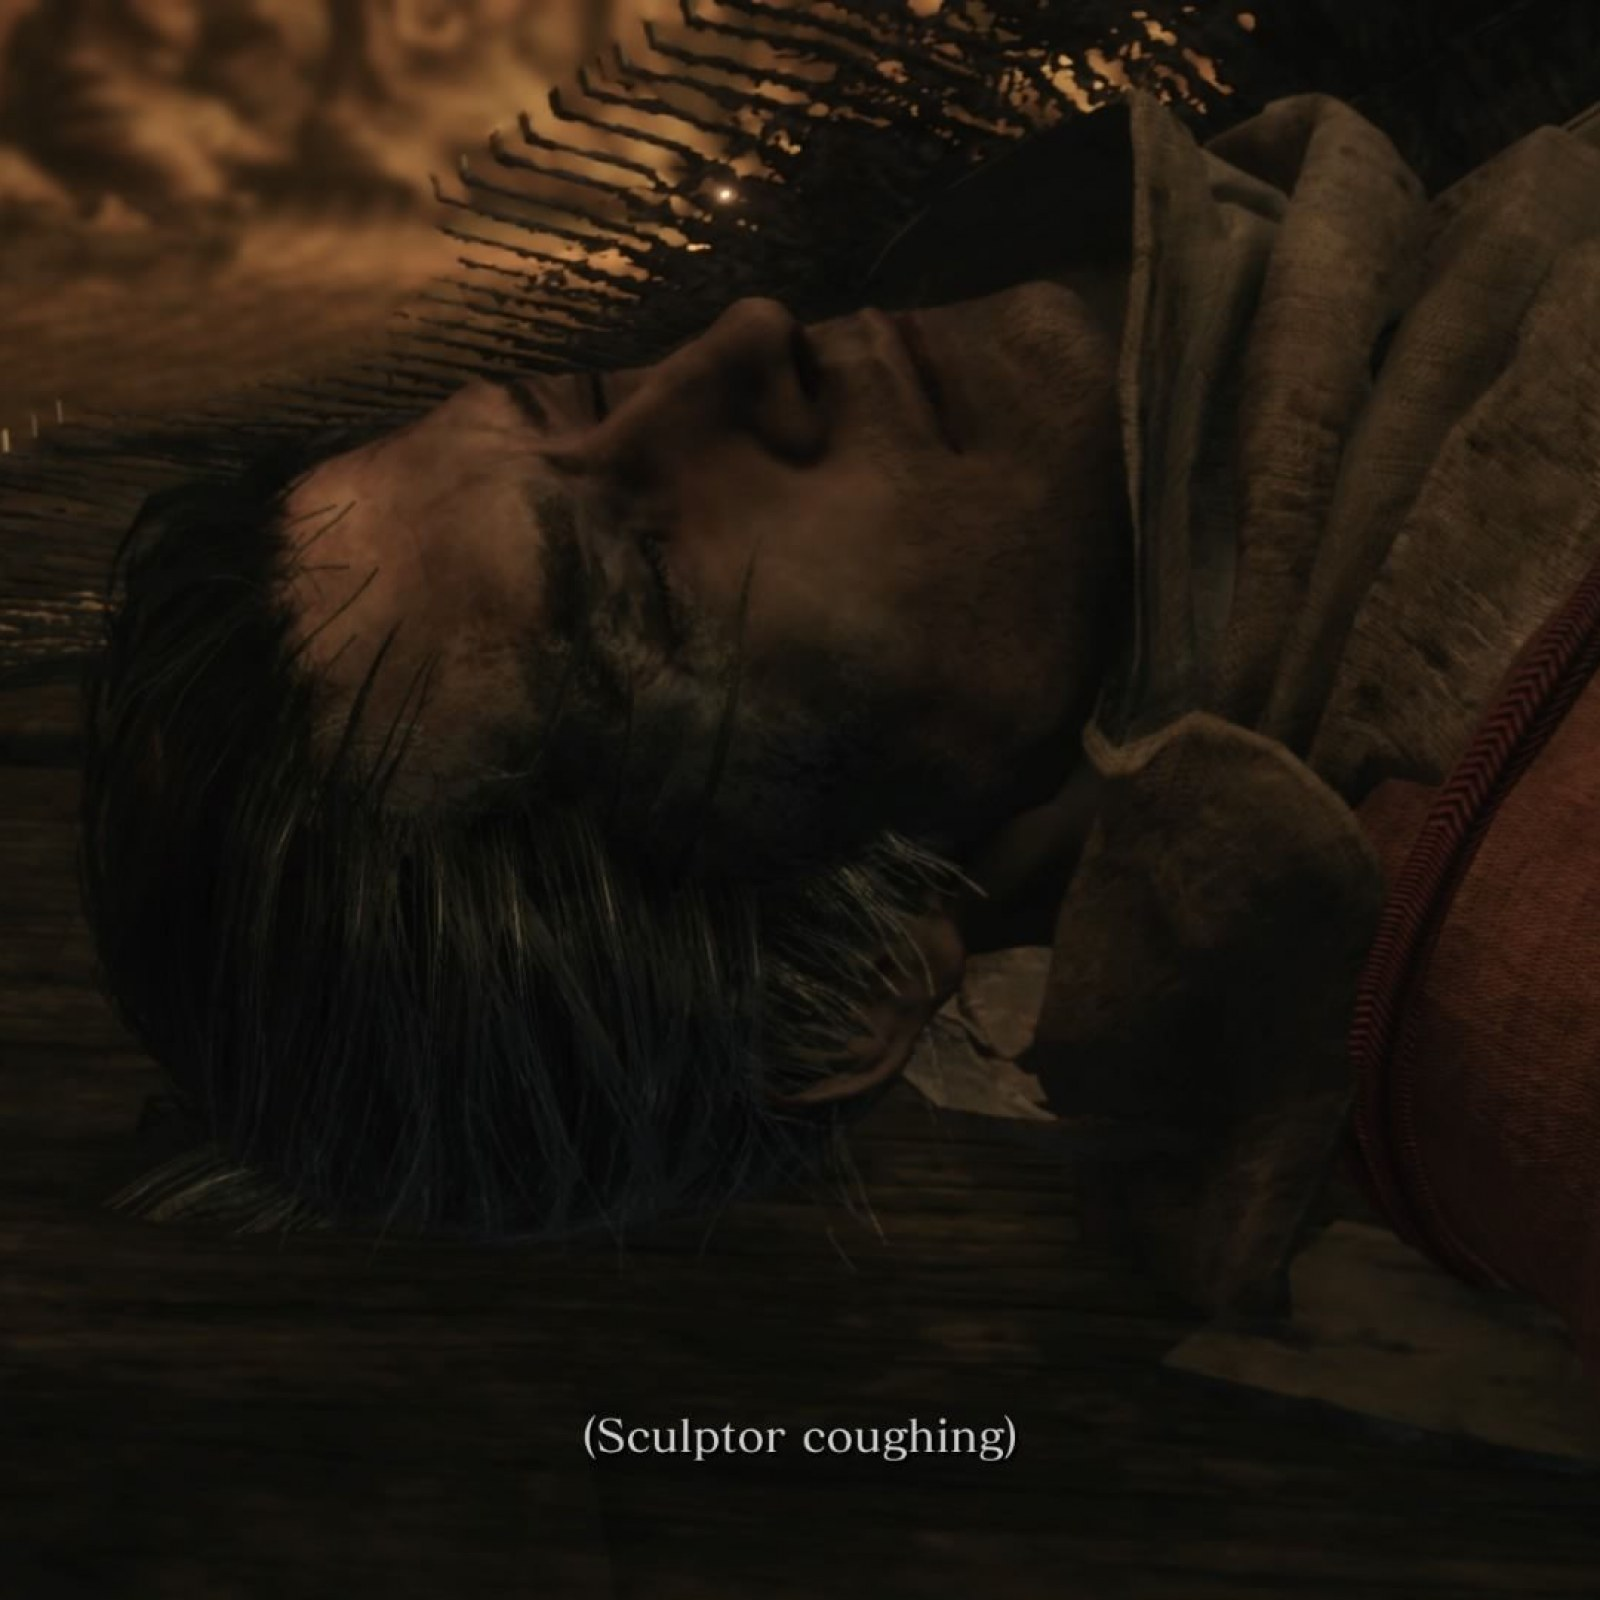 Sekiro: Shadows Die Twice': How to Cure Dragonrot and Remove Rot Essence